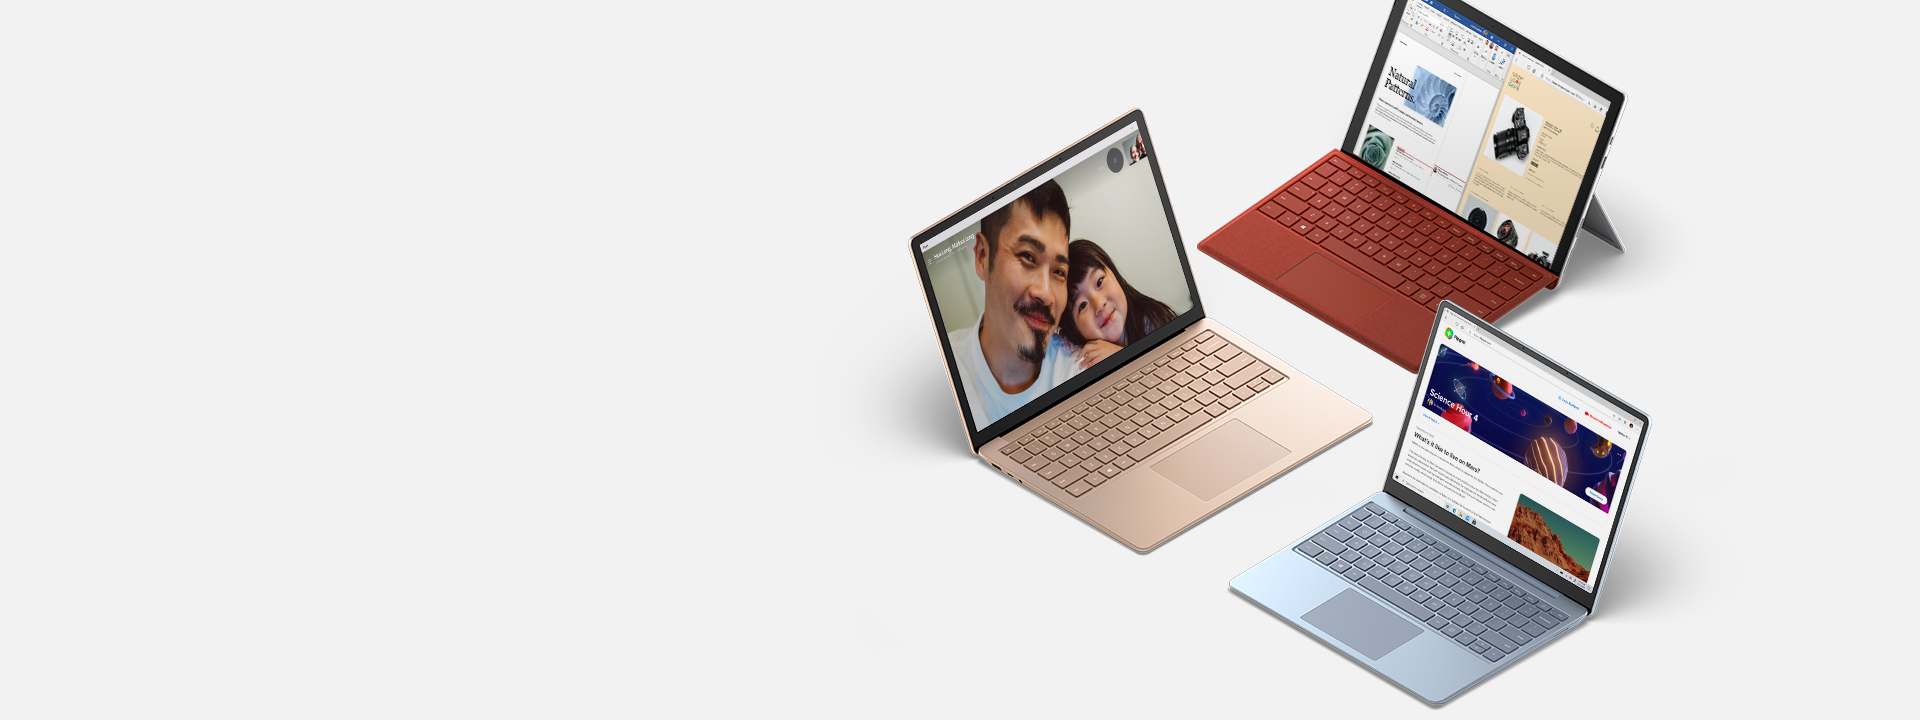 Surface Laptop, Surface Laptop Go, and Surface Pro 7 with various apps on screen